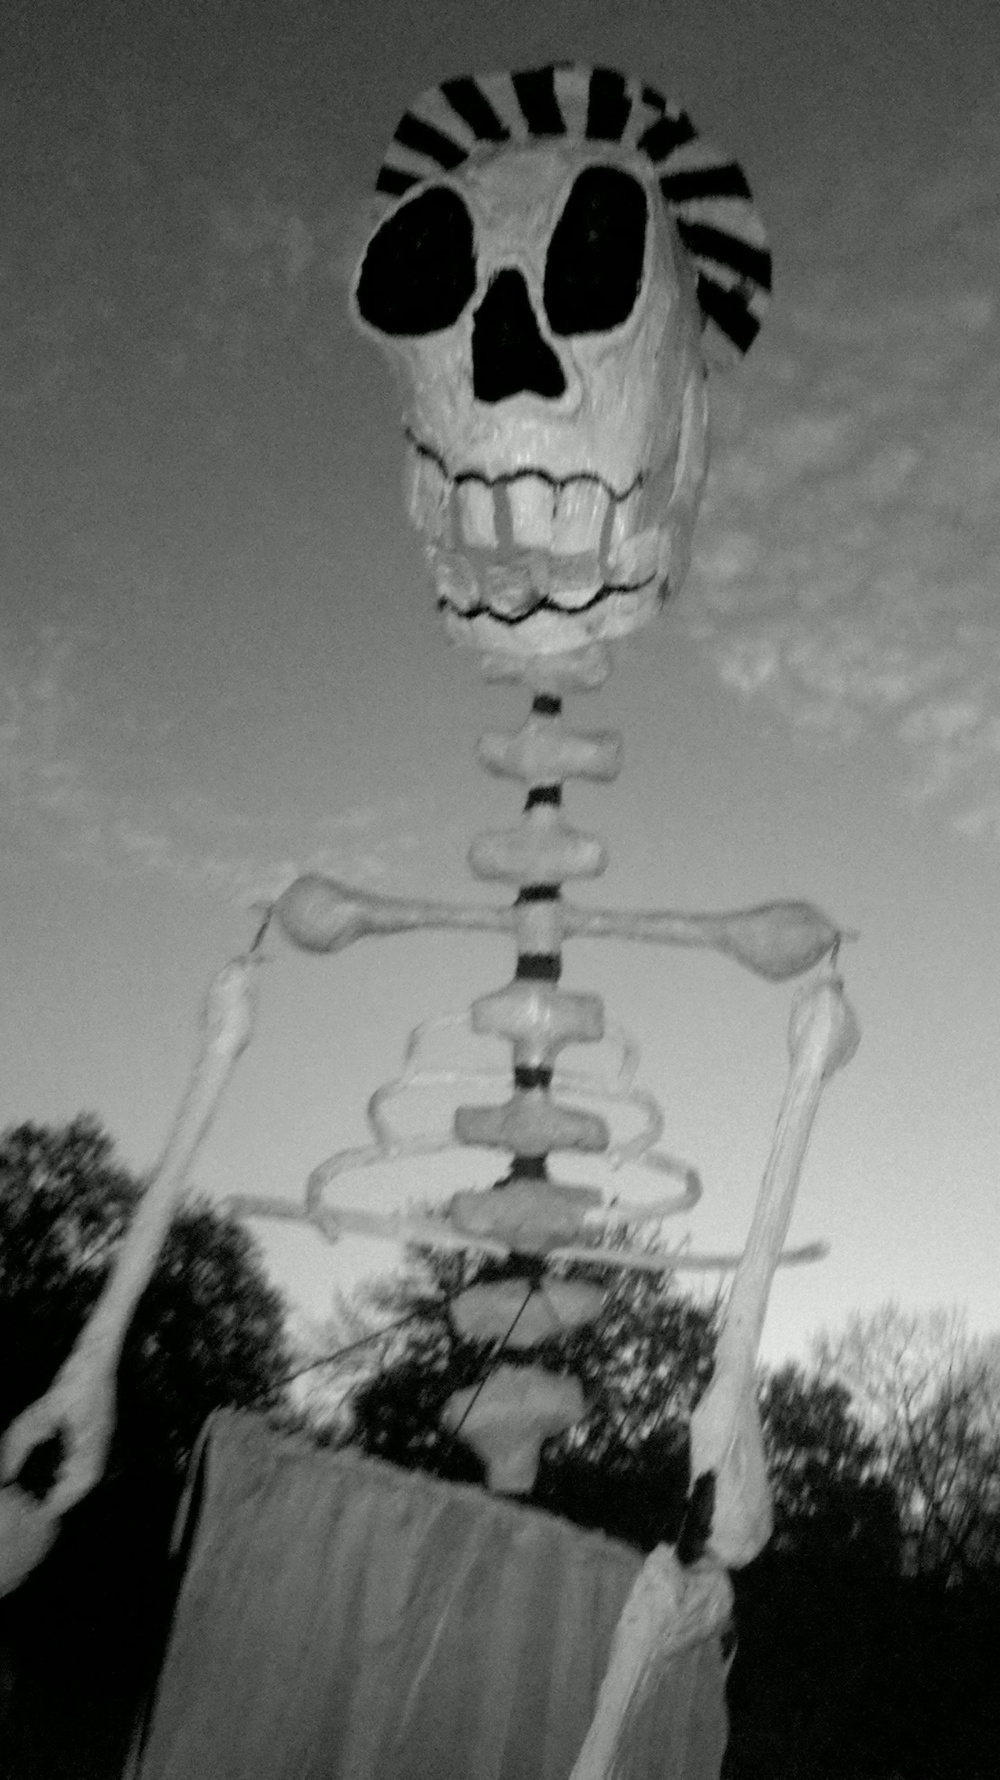 Giant Skeleton Puppet!